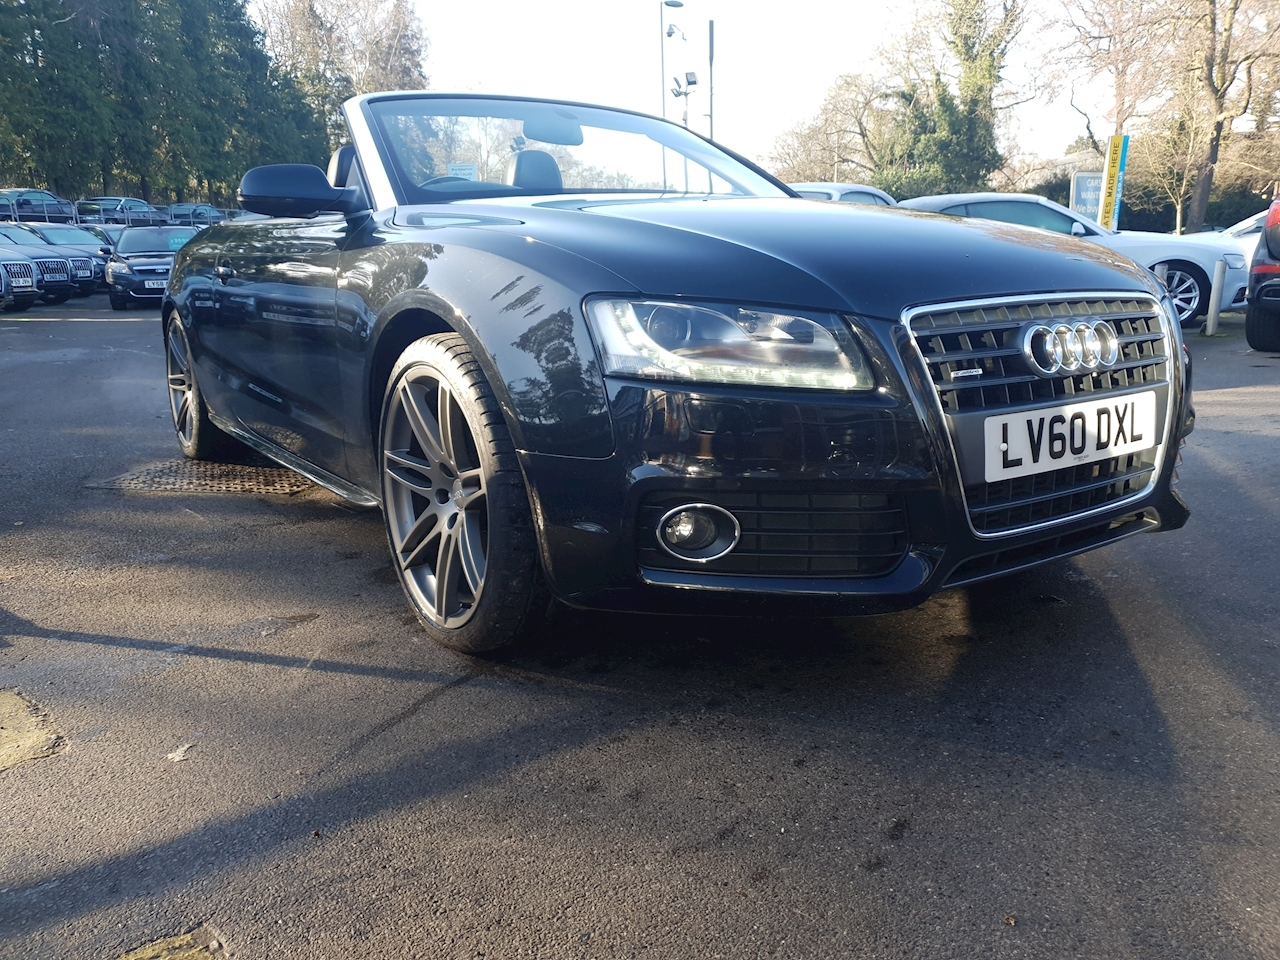 Audi 2.0 TFSI   Quattro S lineOVER £6000 OF FACTORY OPTIONS)Cabriolet 2dr Petrol Multitronic (174 g/km, 208 bhp)